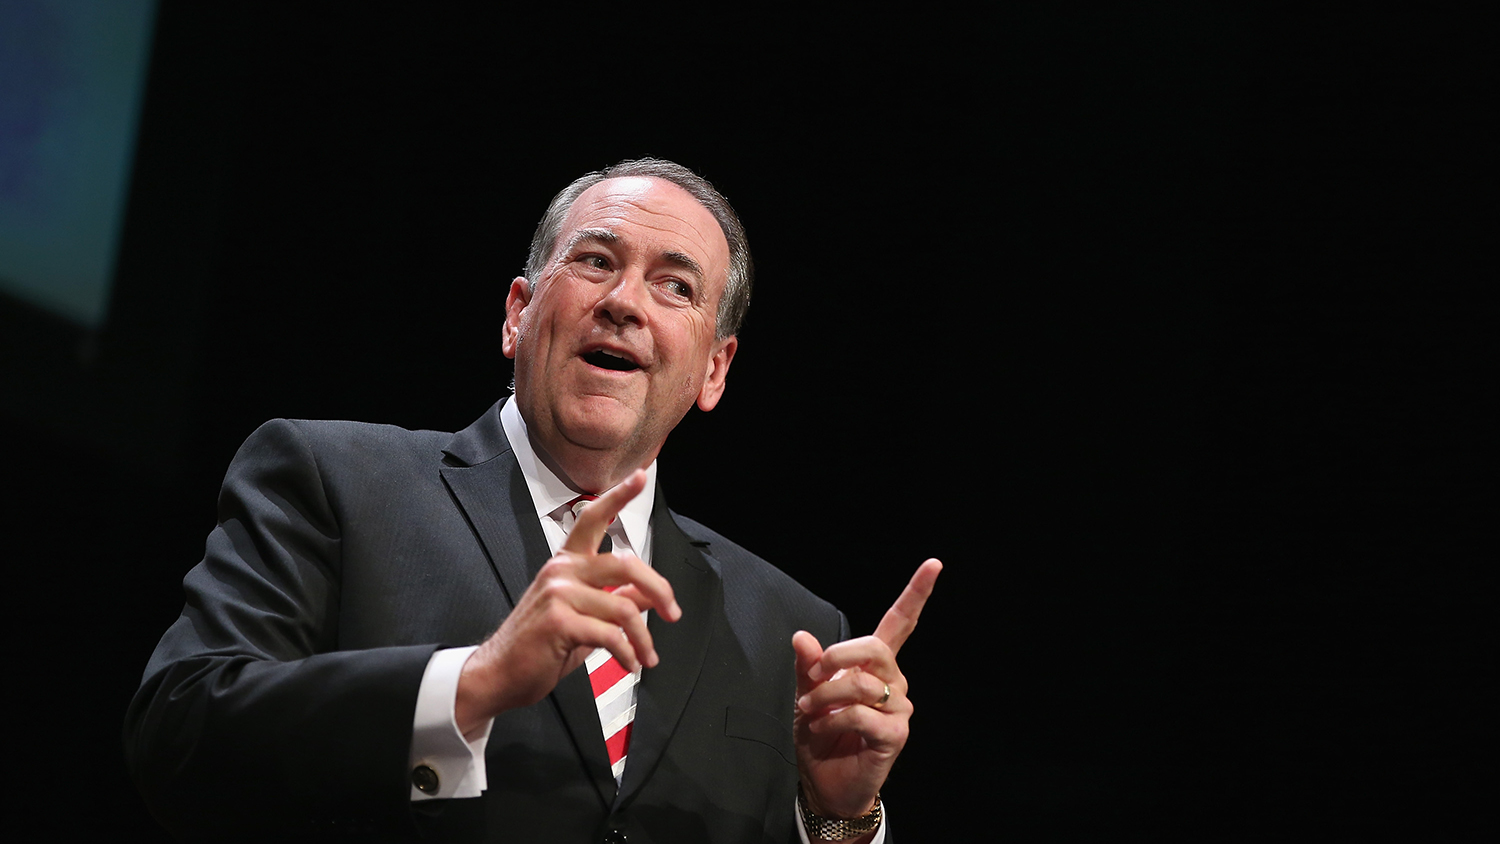 This Is Why Conservatives Heart Mike Huckabee